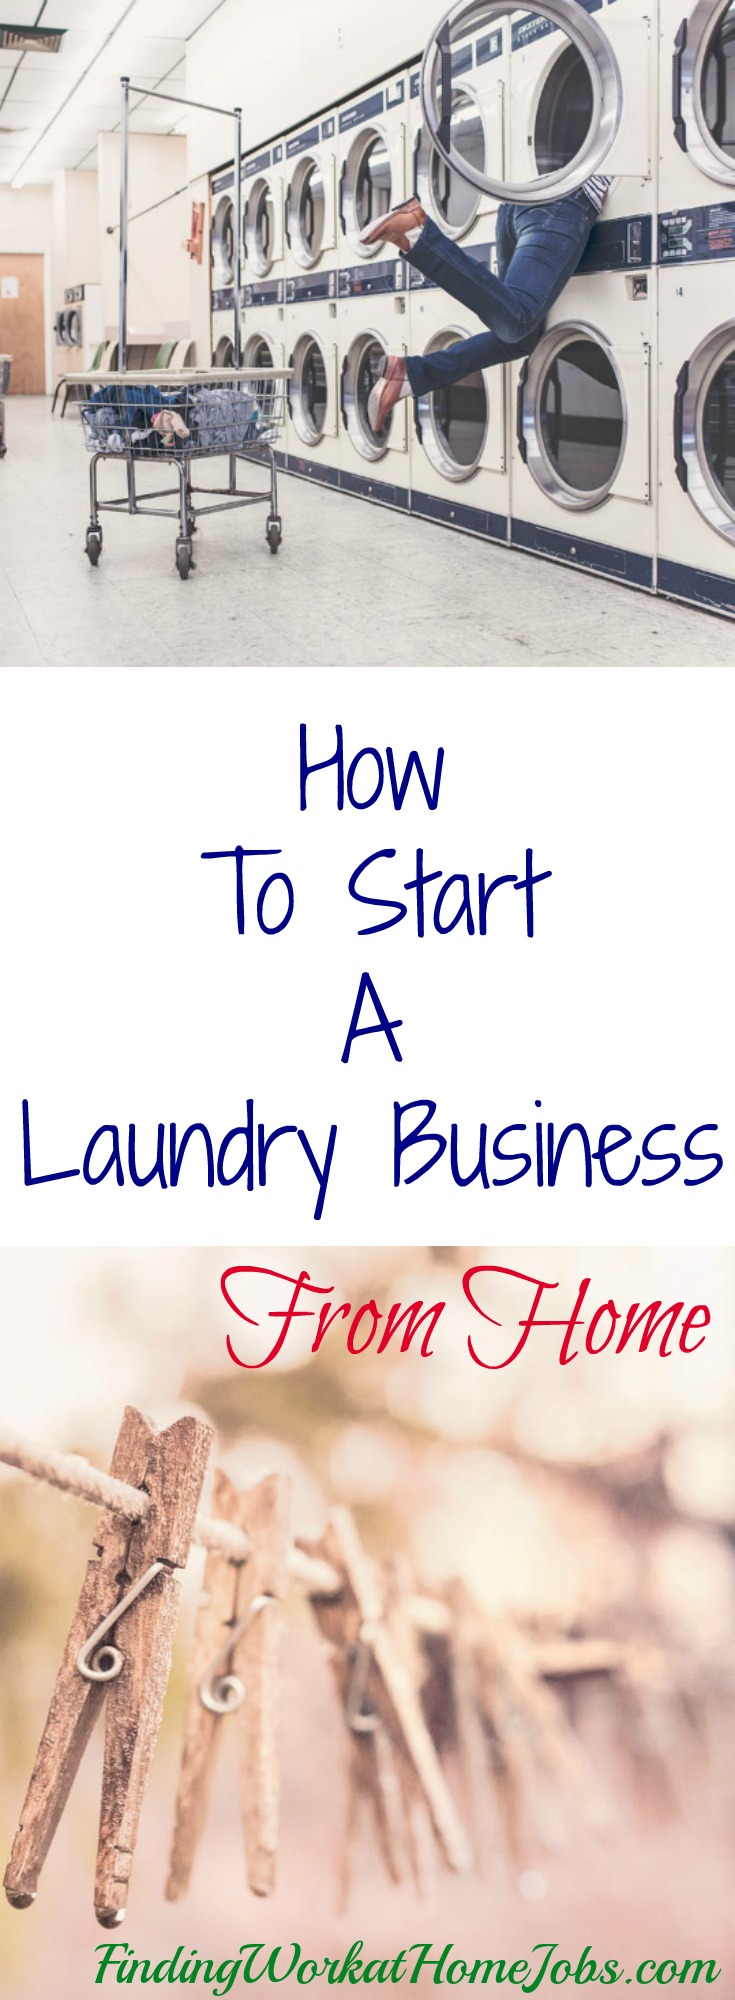 start a laundry business from home